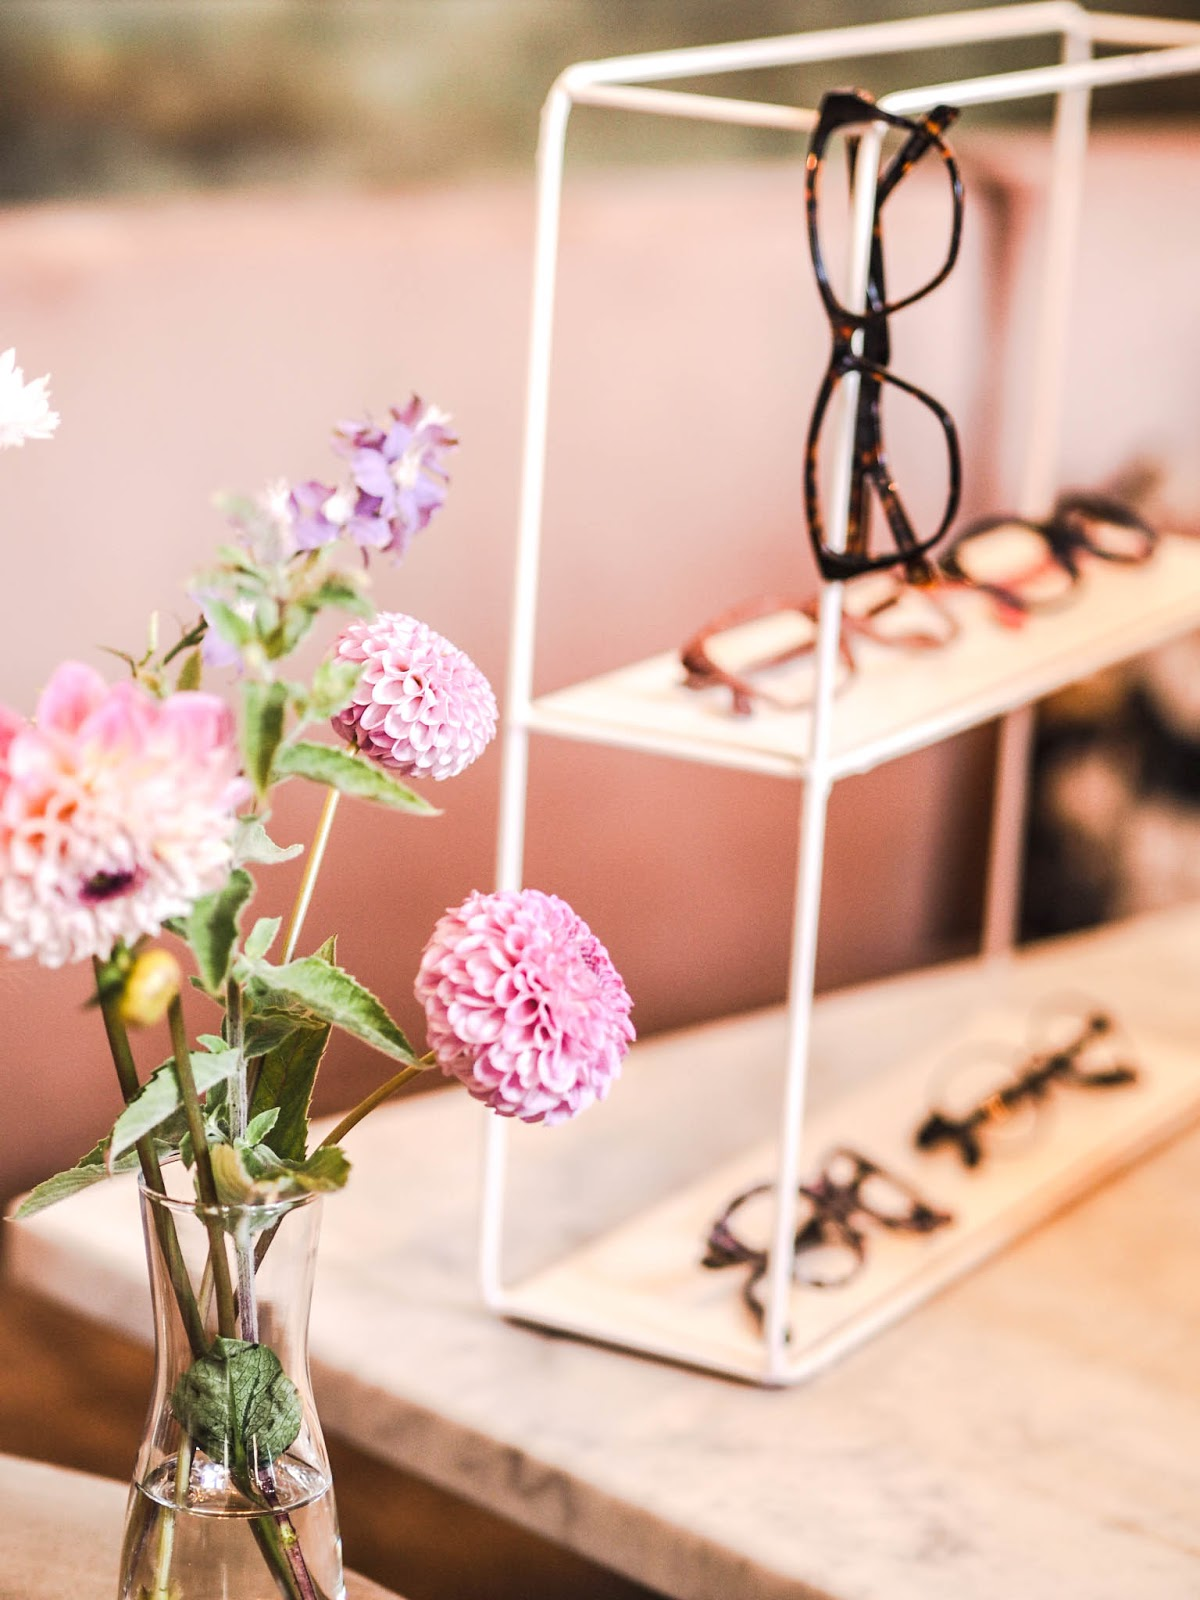 Specsavers Opticians Summer in Bloom.